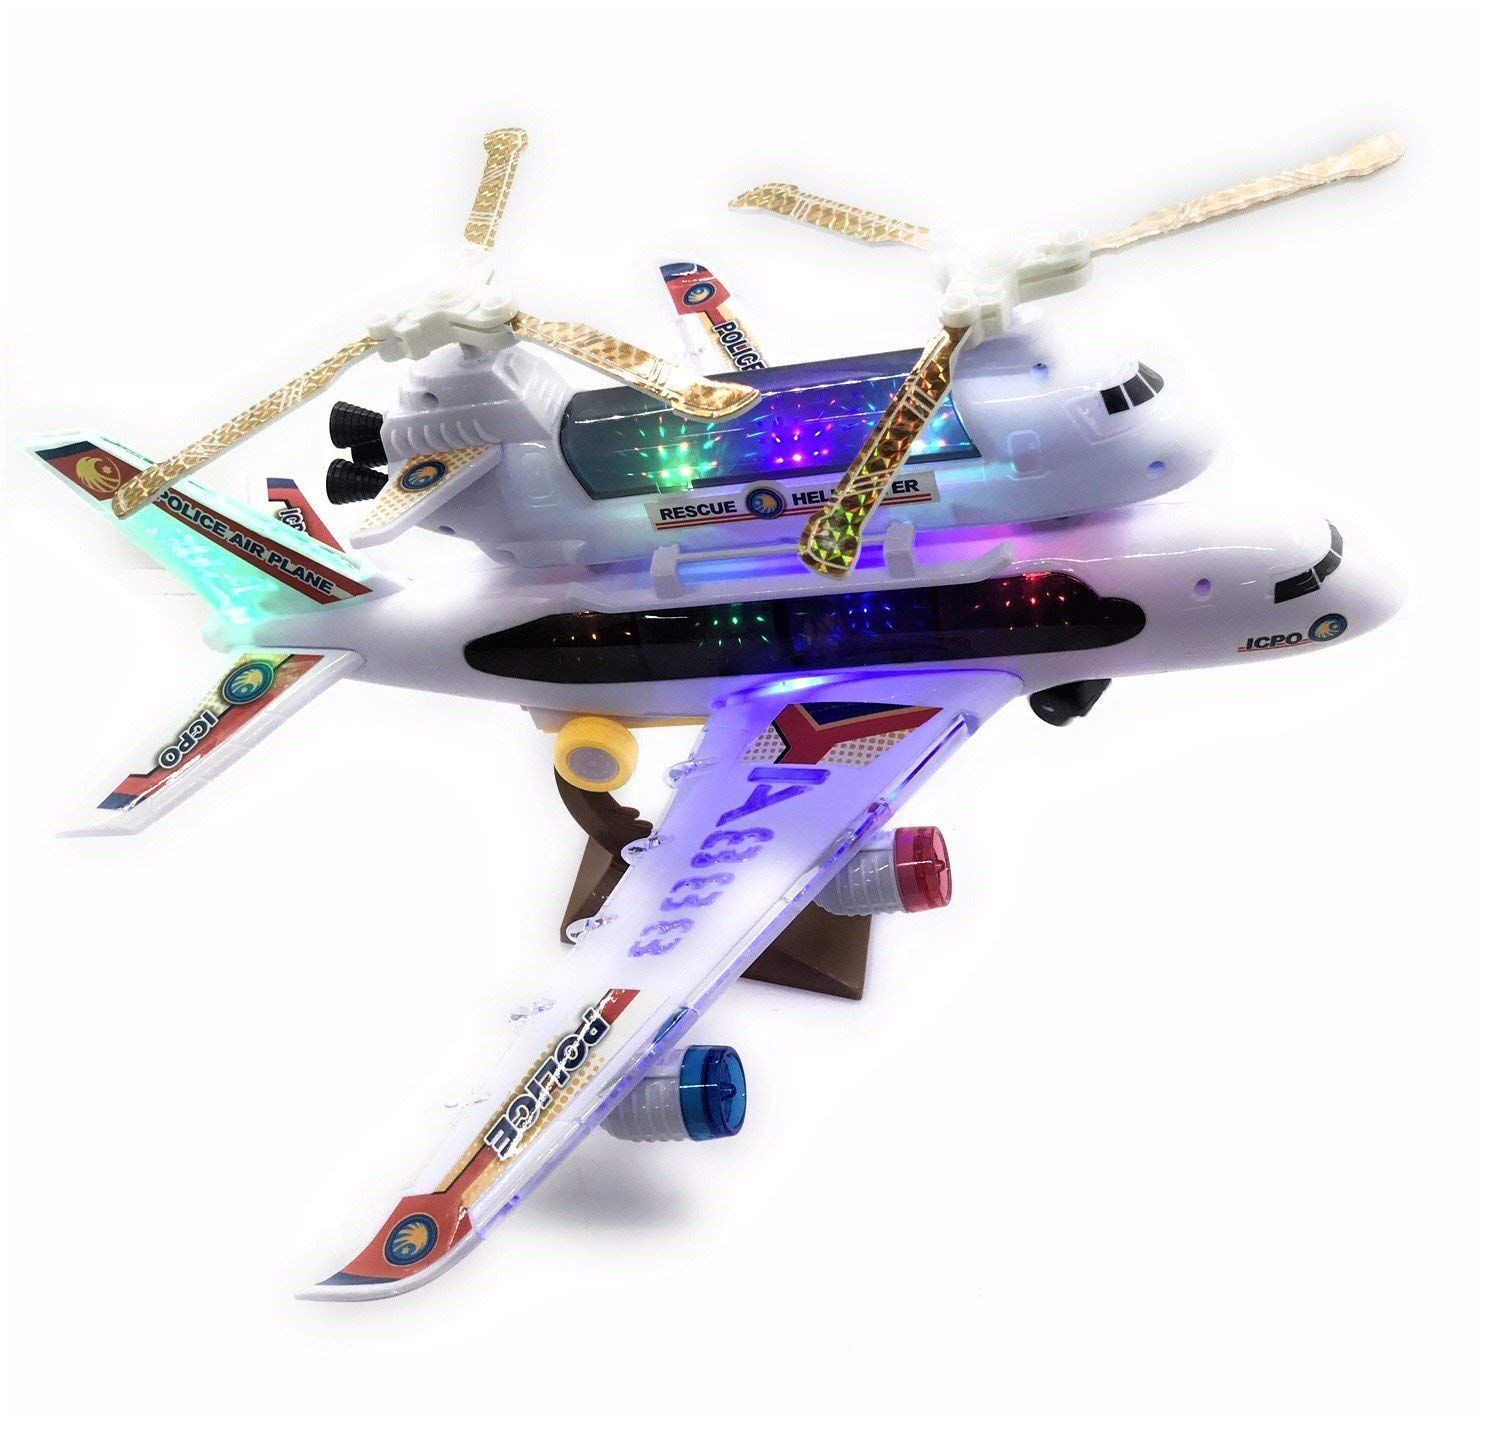 2-in-1 Kids Airplane & Helicopter Toy Bump & Go Action Airplane Toy Airliner Airbus w  Attached Rescue... by Velocity Toys